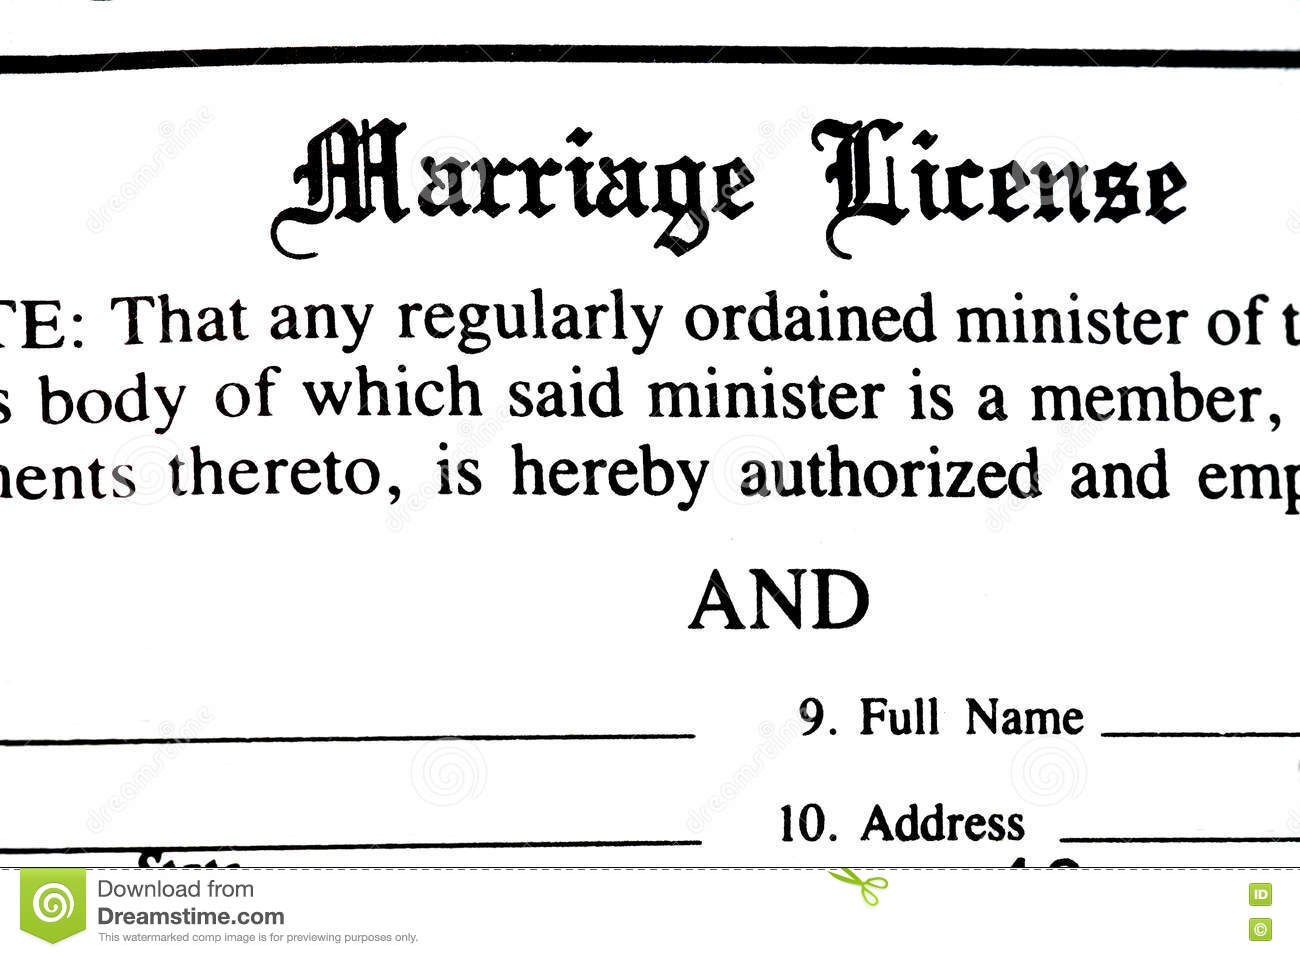 Copy Of Marriage License Request Form For A Confidential: Marriage License Form Stock Image. Image Of Certificate